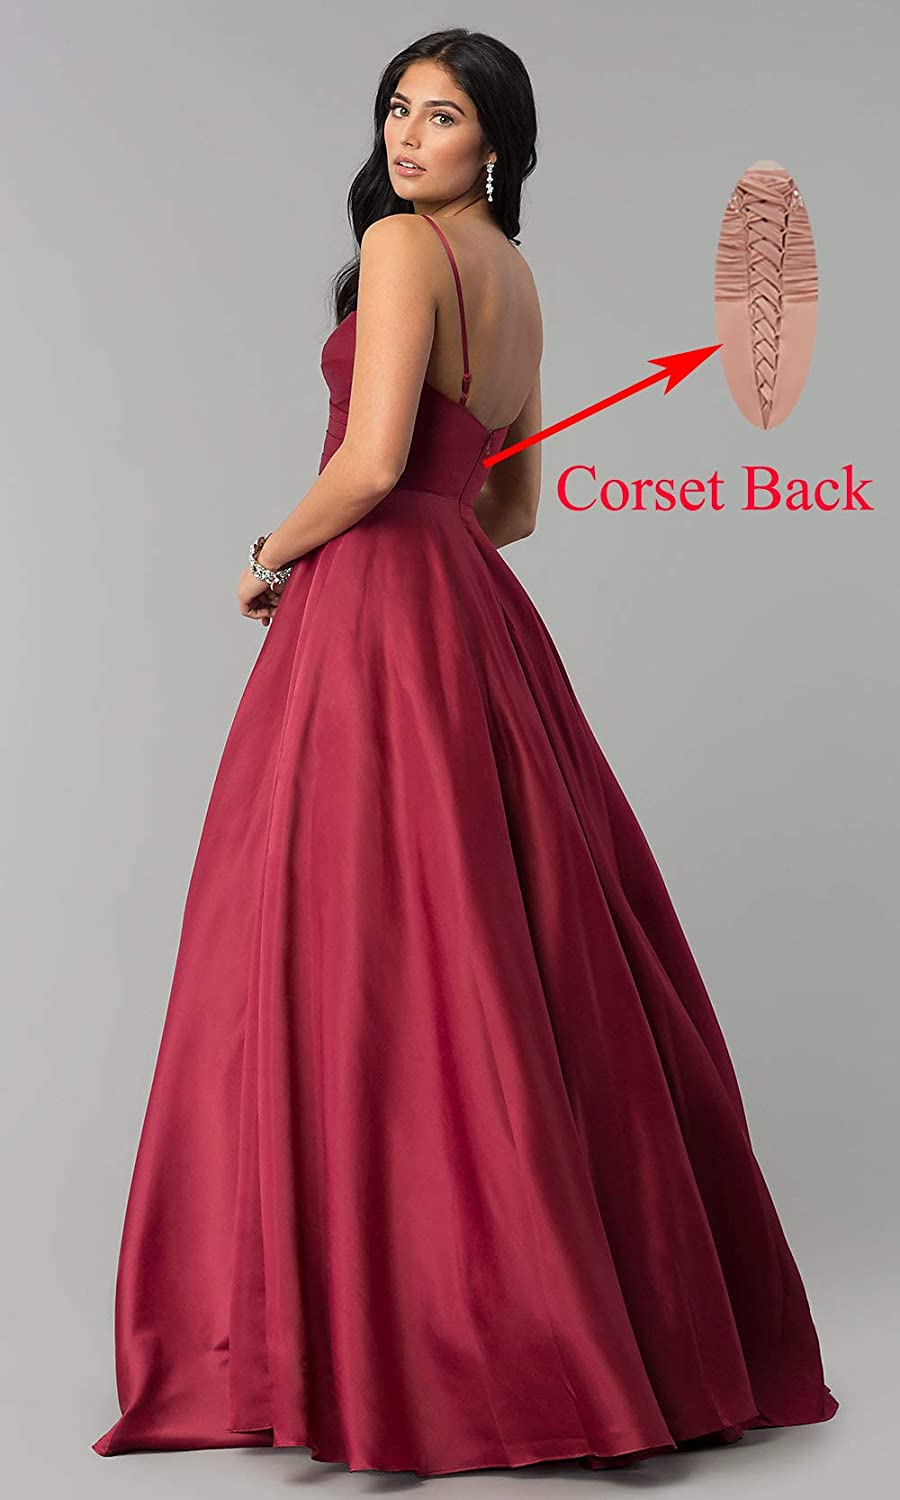 Women's Spaghetti Strap A Line V Neck Satin Prom Dress Long Evening Formal Party Dress Ruched Bodice